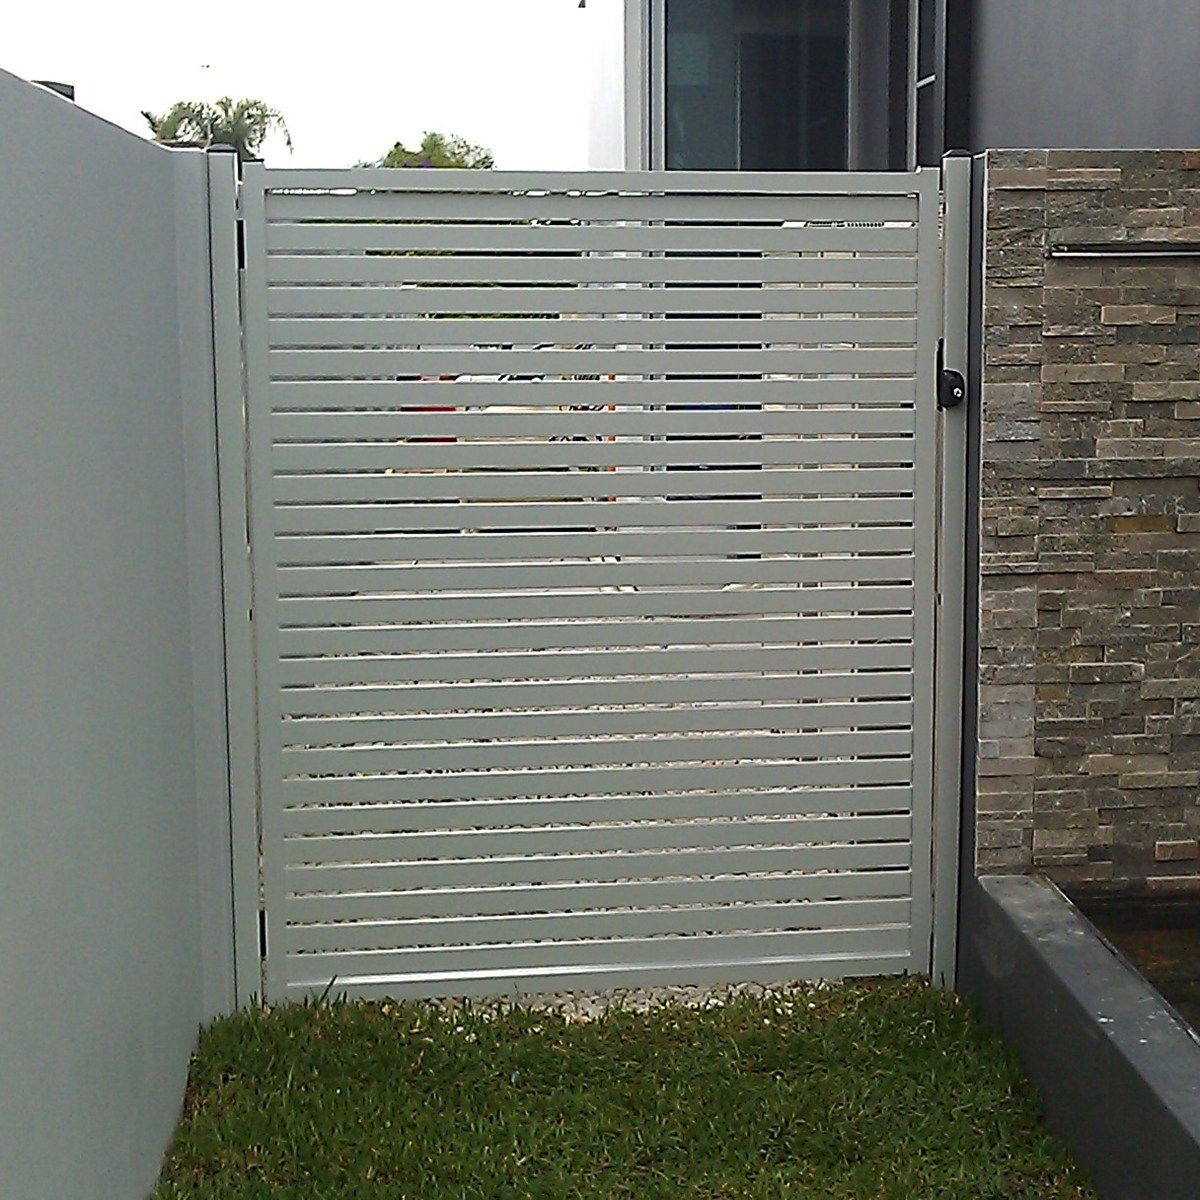 Cheap Privacy Fence Ideas Privacy Screens Fencing Boresi Fencing I Like The Private Feel But You Can Stil Fence Decor Privacy Fences Wood Privacy Fence